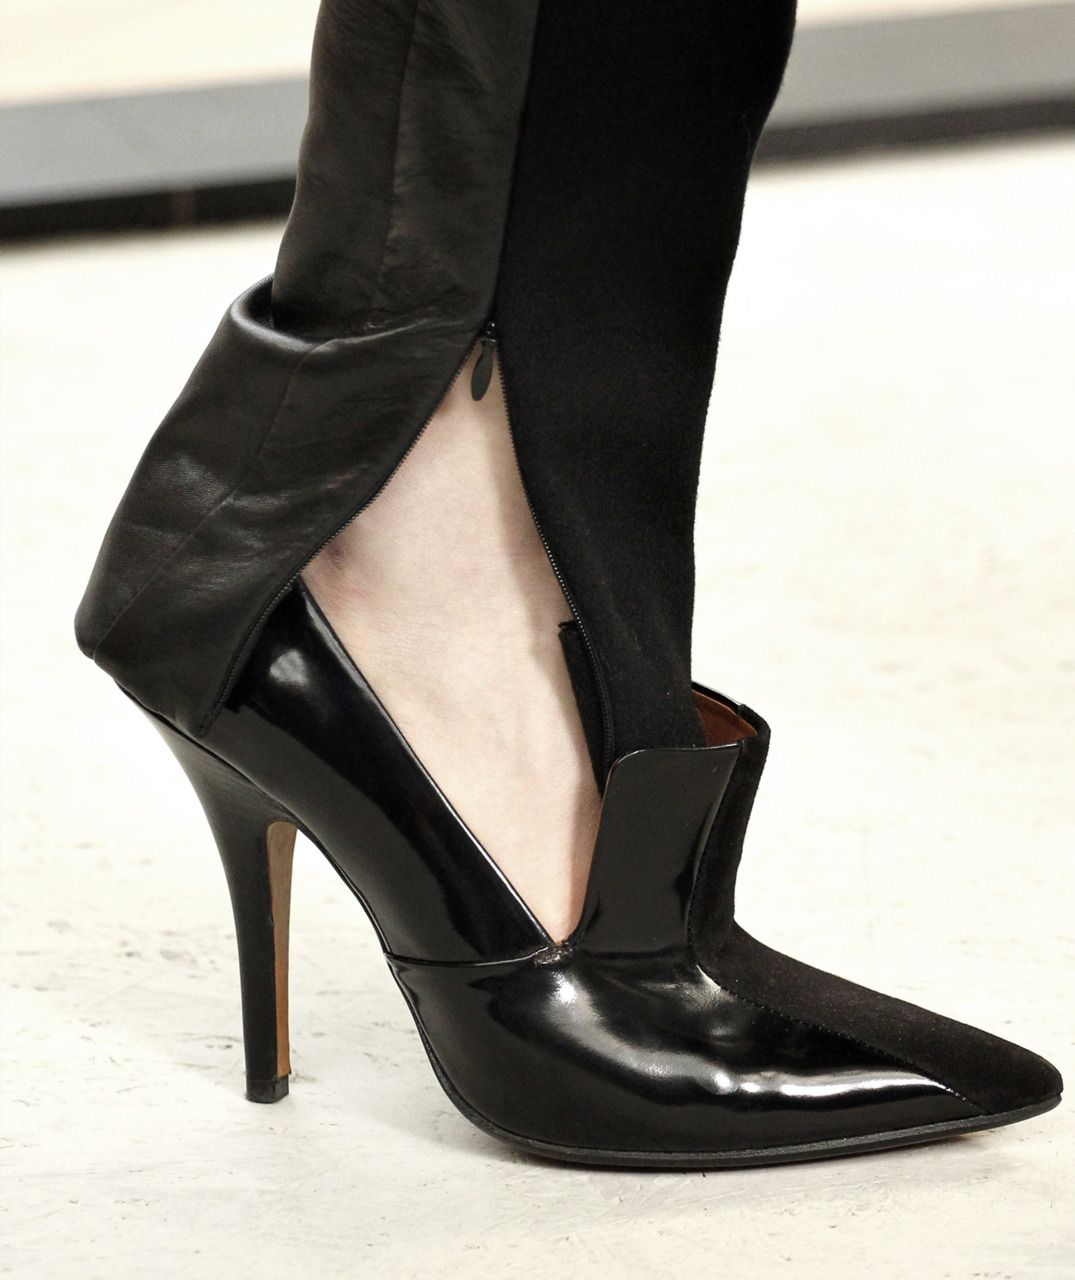 think they are Celine or inspired by